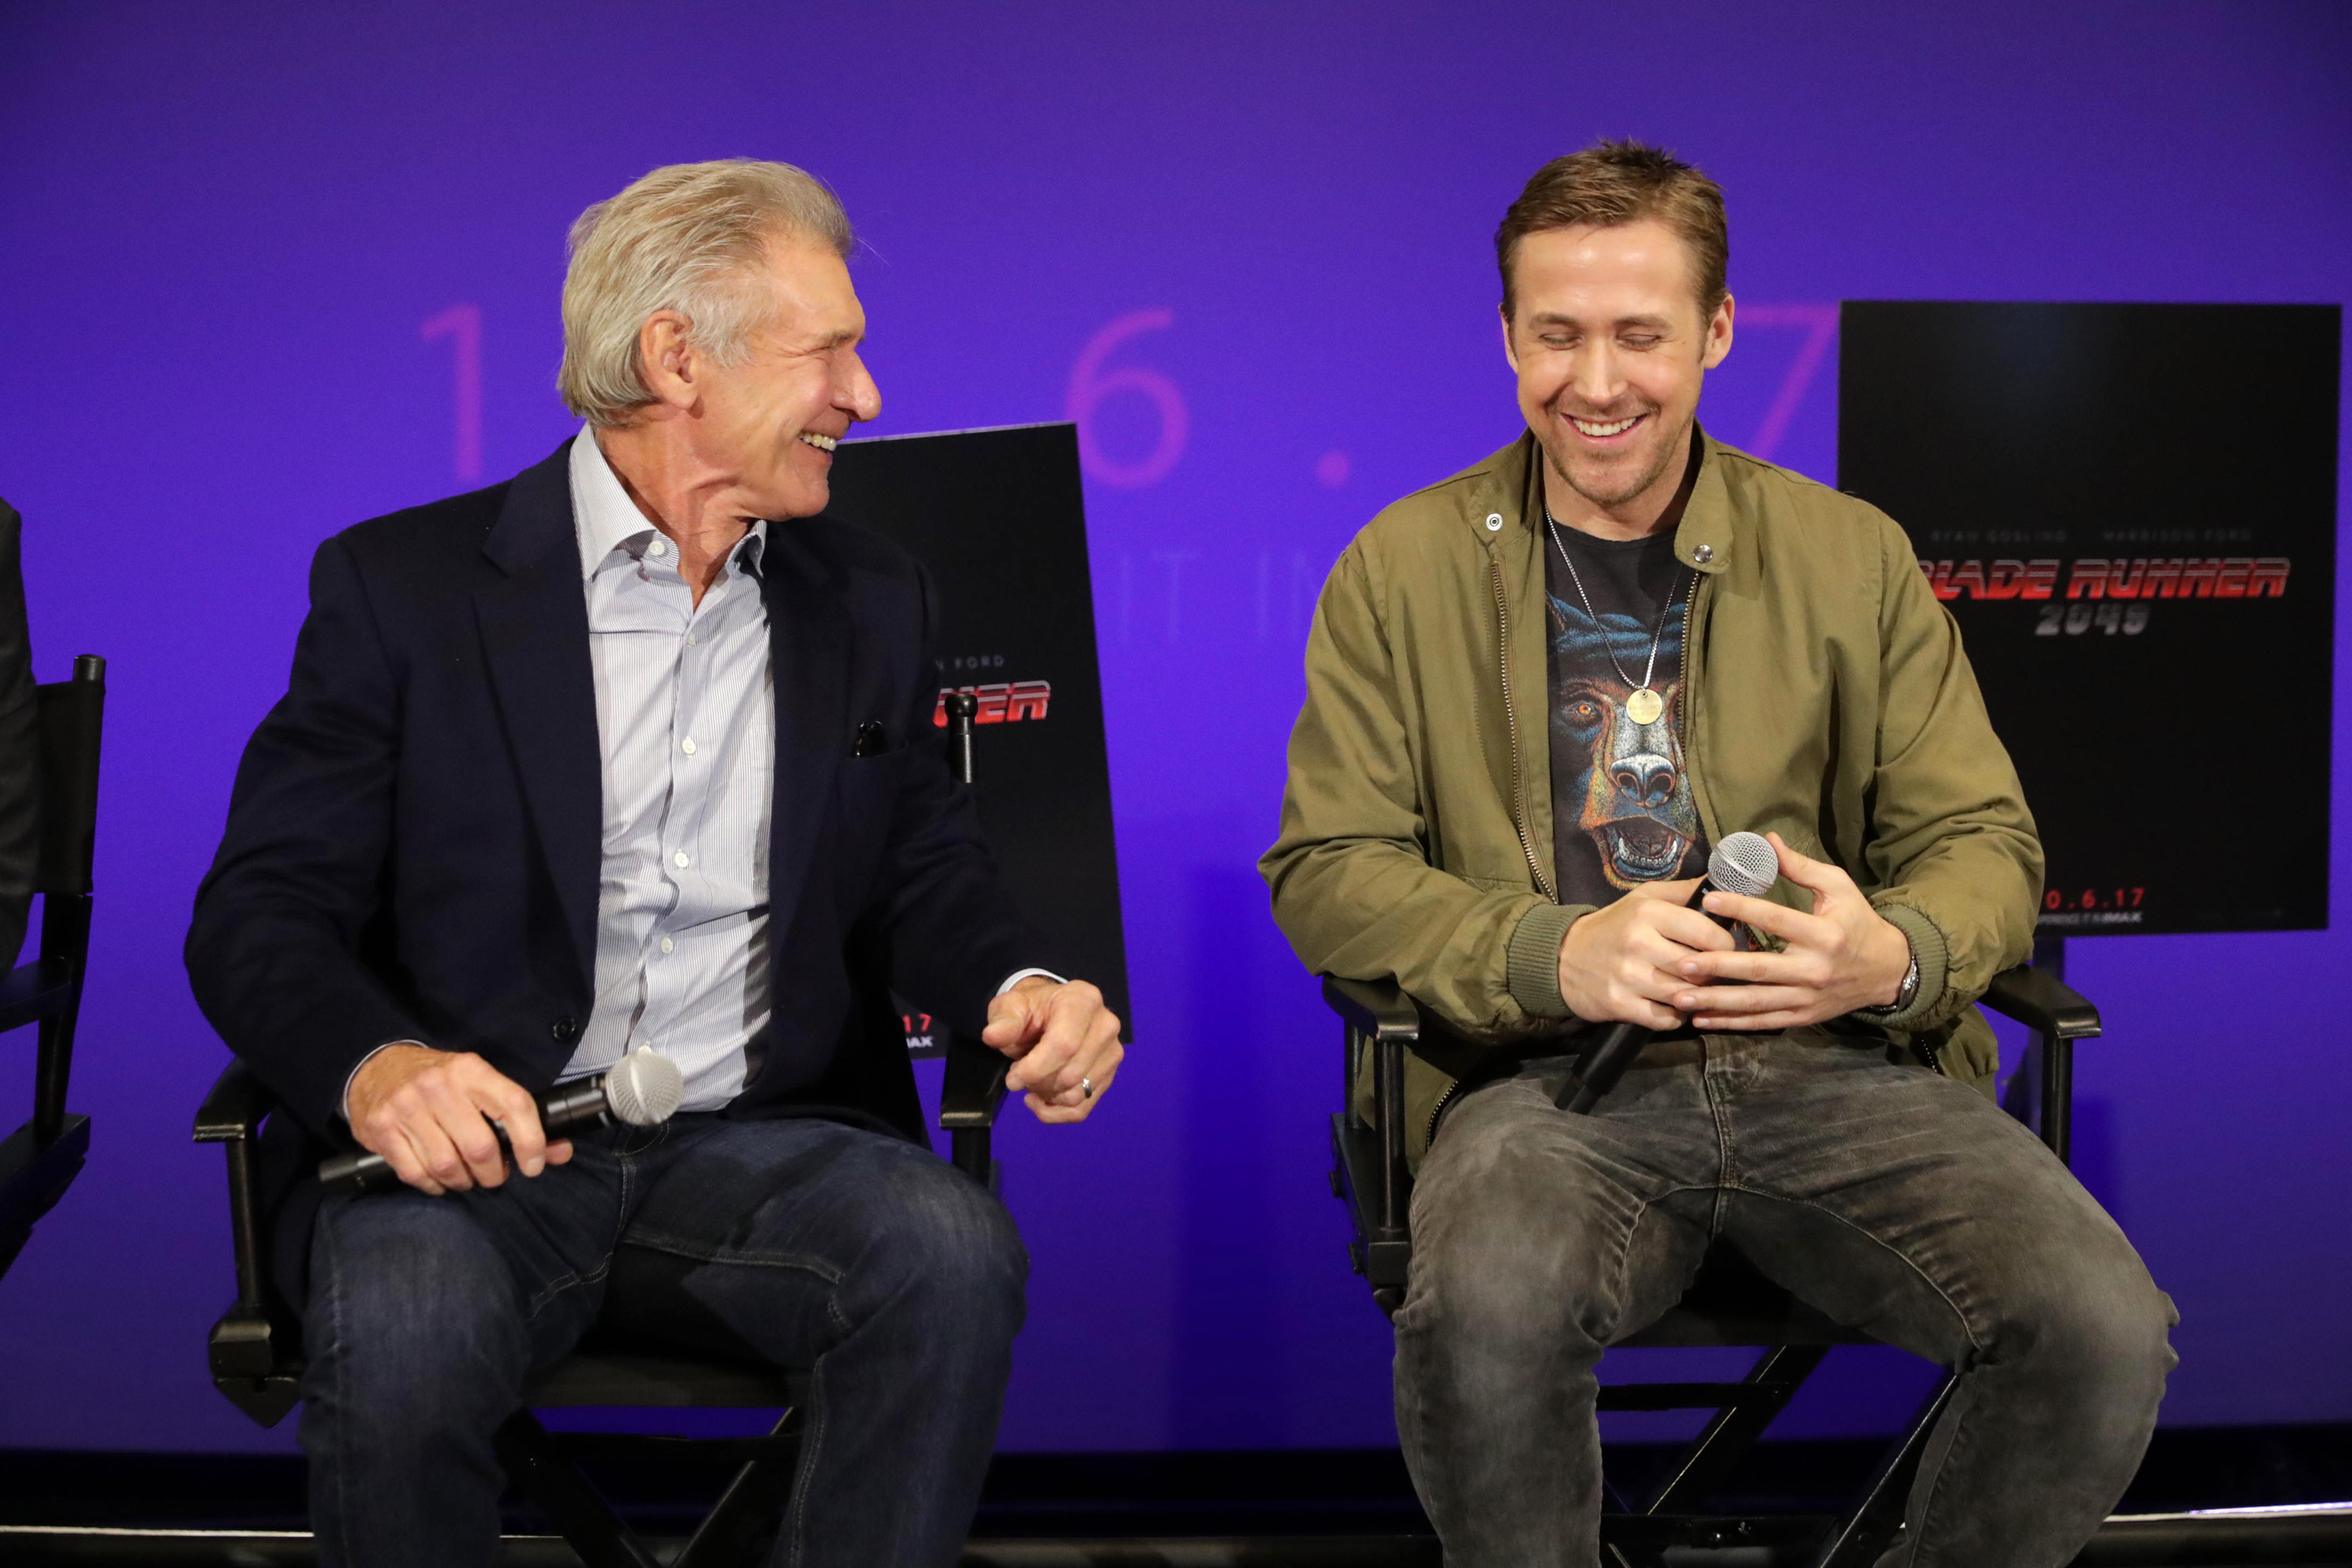 Exclusive Mandatory Credit: Photo by Eric Charbonneau/REX/Shutterstock (8811069ac) Harrison Ford, Ryan Gosling 'Blade Runner 2049' film Q & A, Los Angeles, USA - 08 May 2017